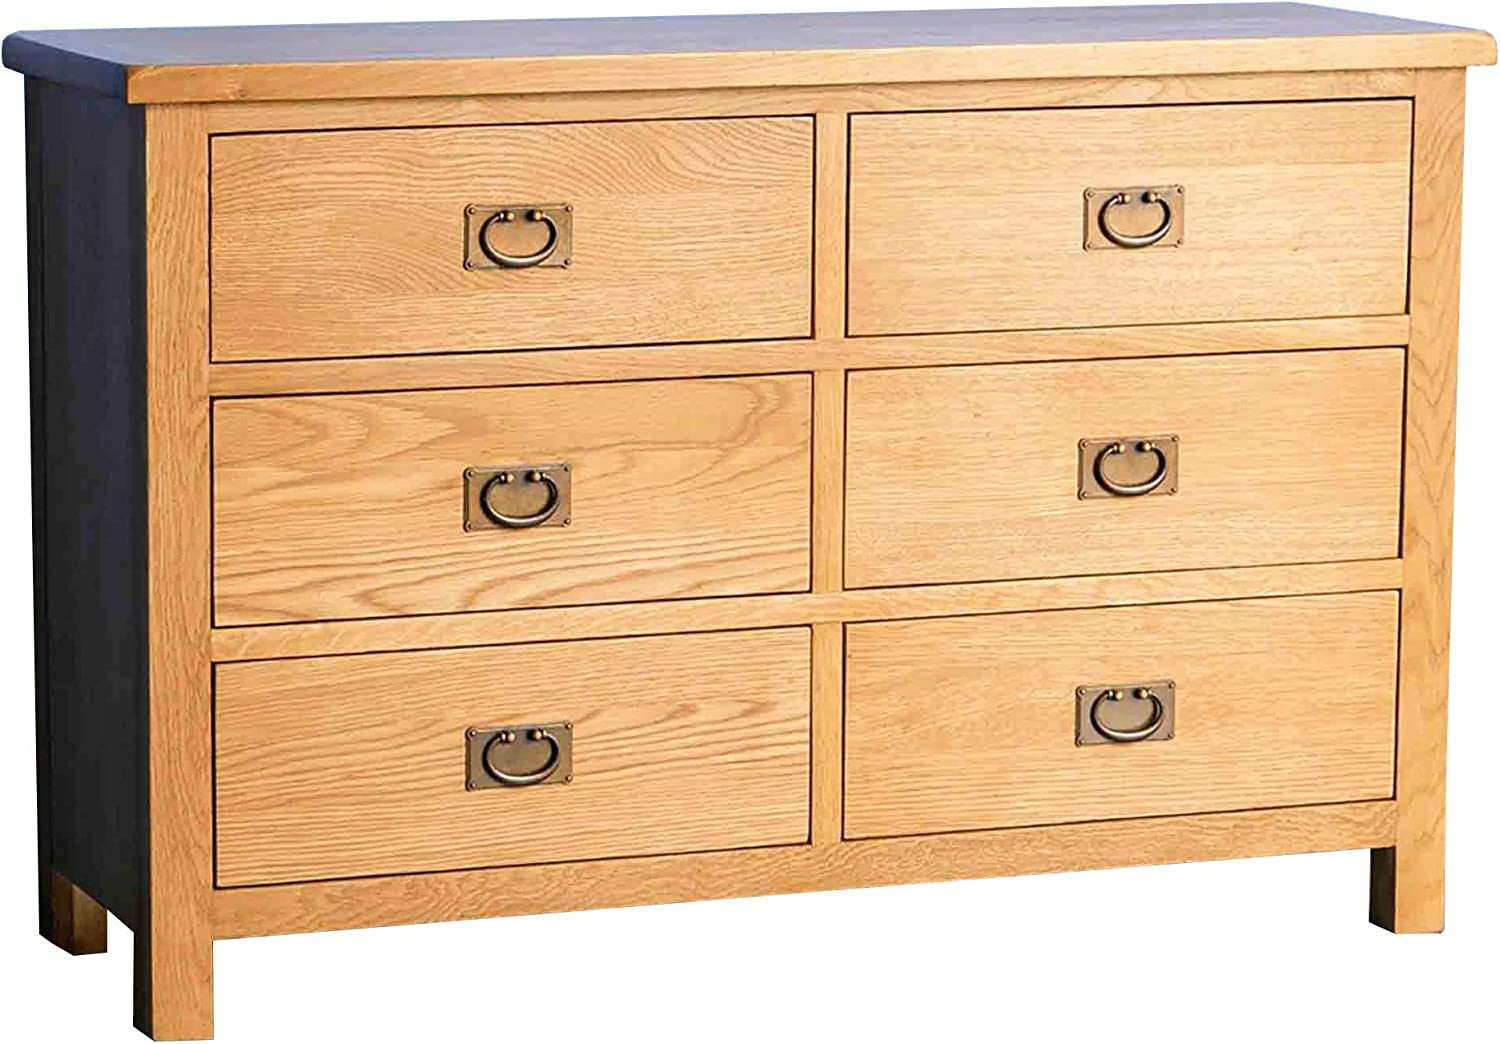 Surrey Oak 3 3 Chest Of Drawers Large Wide Traditional Rustic Waxed Solid Wood 6 Drawer Storage Chest For Bedroom Fully Assembled 38 X 120 X 78 Cm Amazon Co Uk Kitchen Home